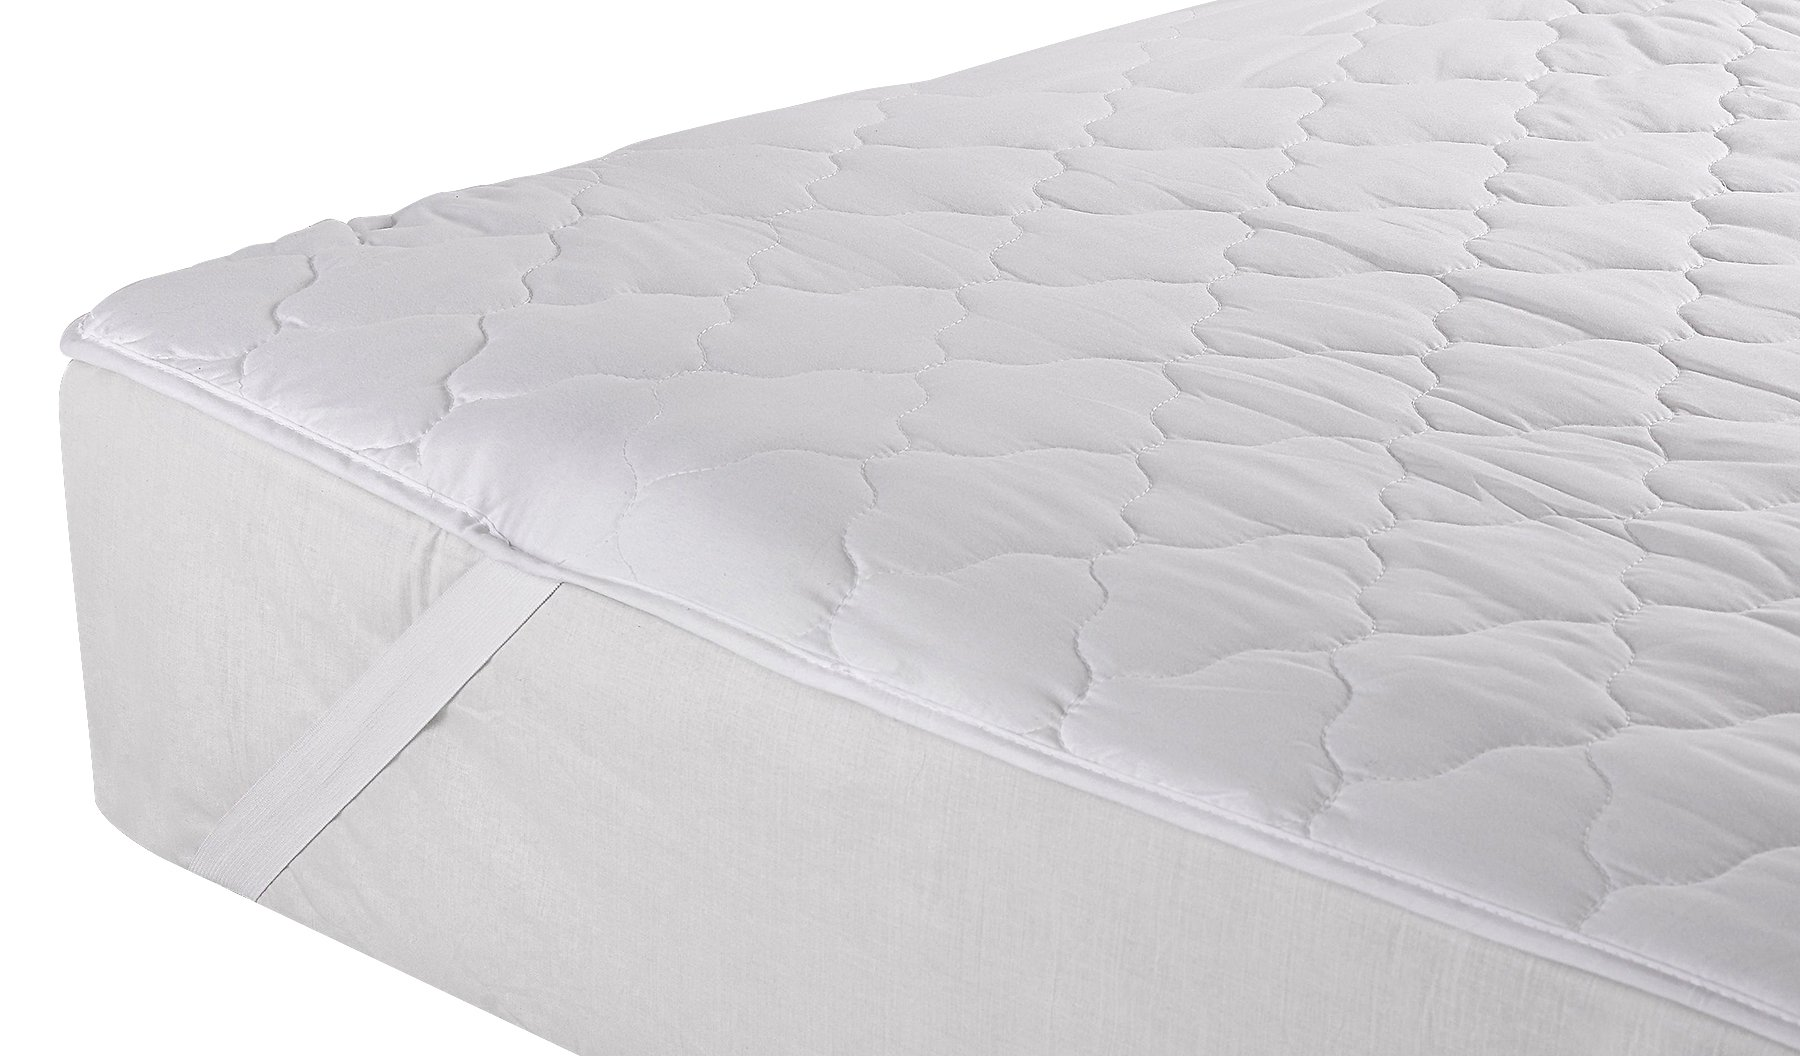 Gilbin Quilted Cot Size Mattress Pad, 30'' x 74''